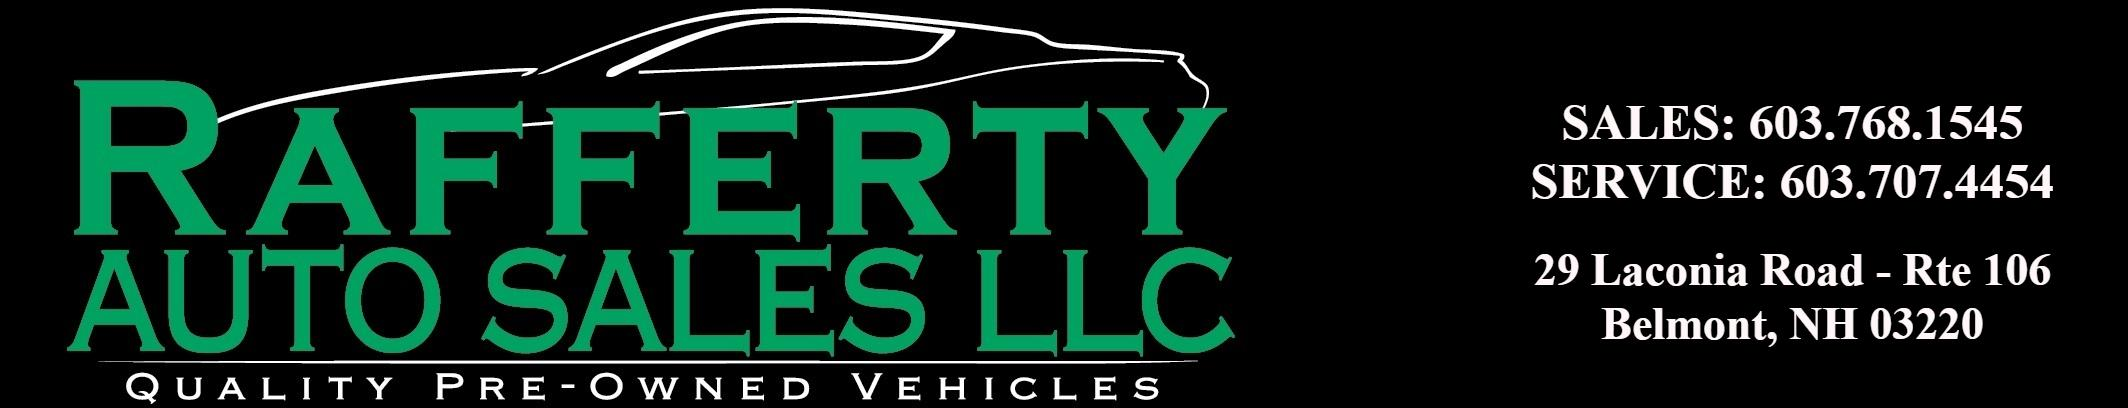 Rafferty Auto Sales LLC. (603) 460-4080